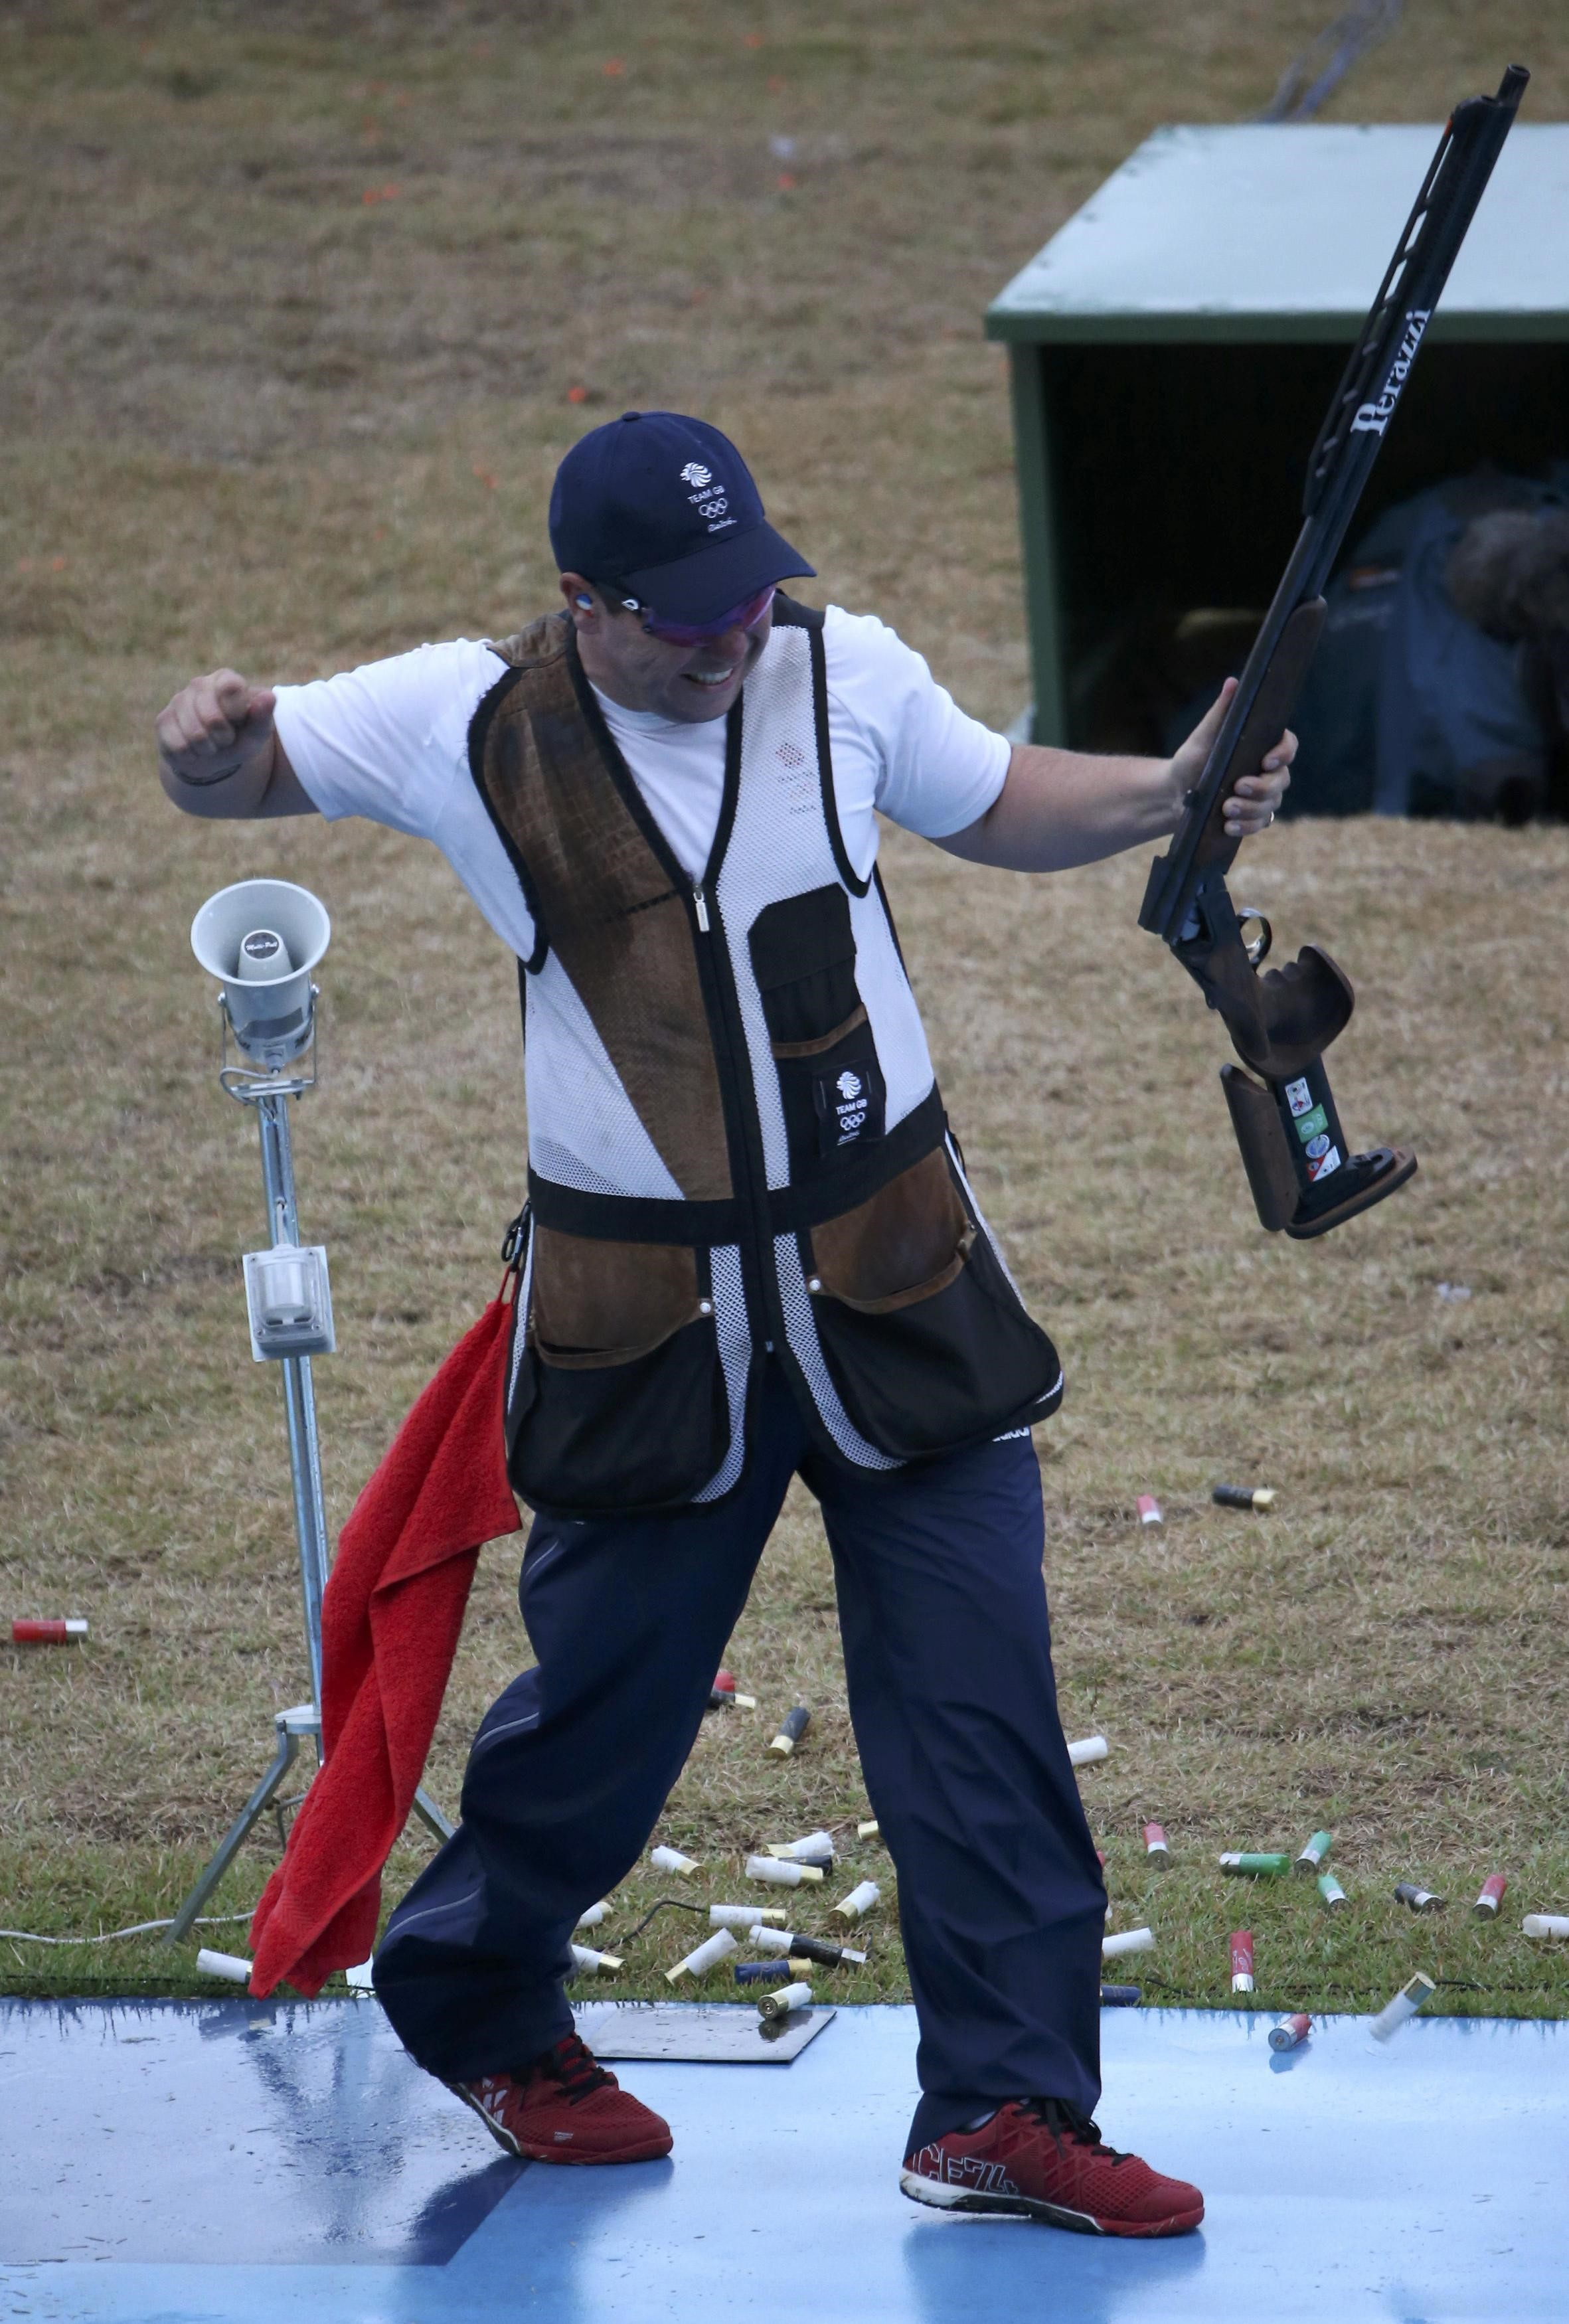 2016 Rio Olympics - Shooting - Final - Men's Double Trap Finals - Olympic Shooting Centre - Rio de Janeiro, Brazil - 10/08/2016. Steven Scott (GBR) of United Kingdom reacts.